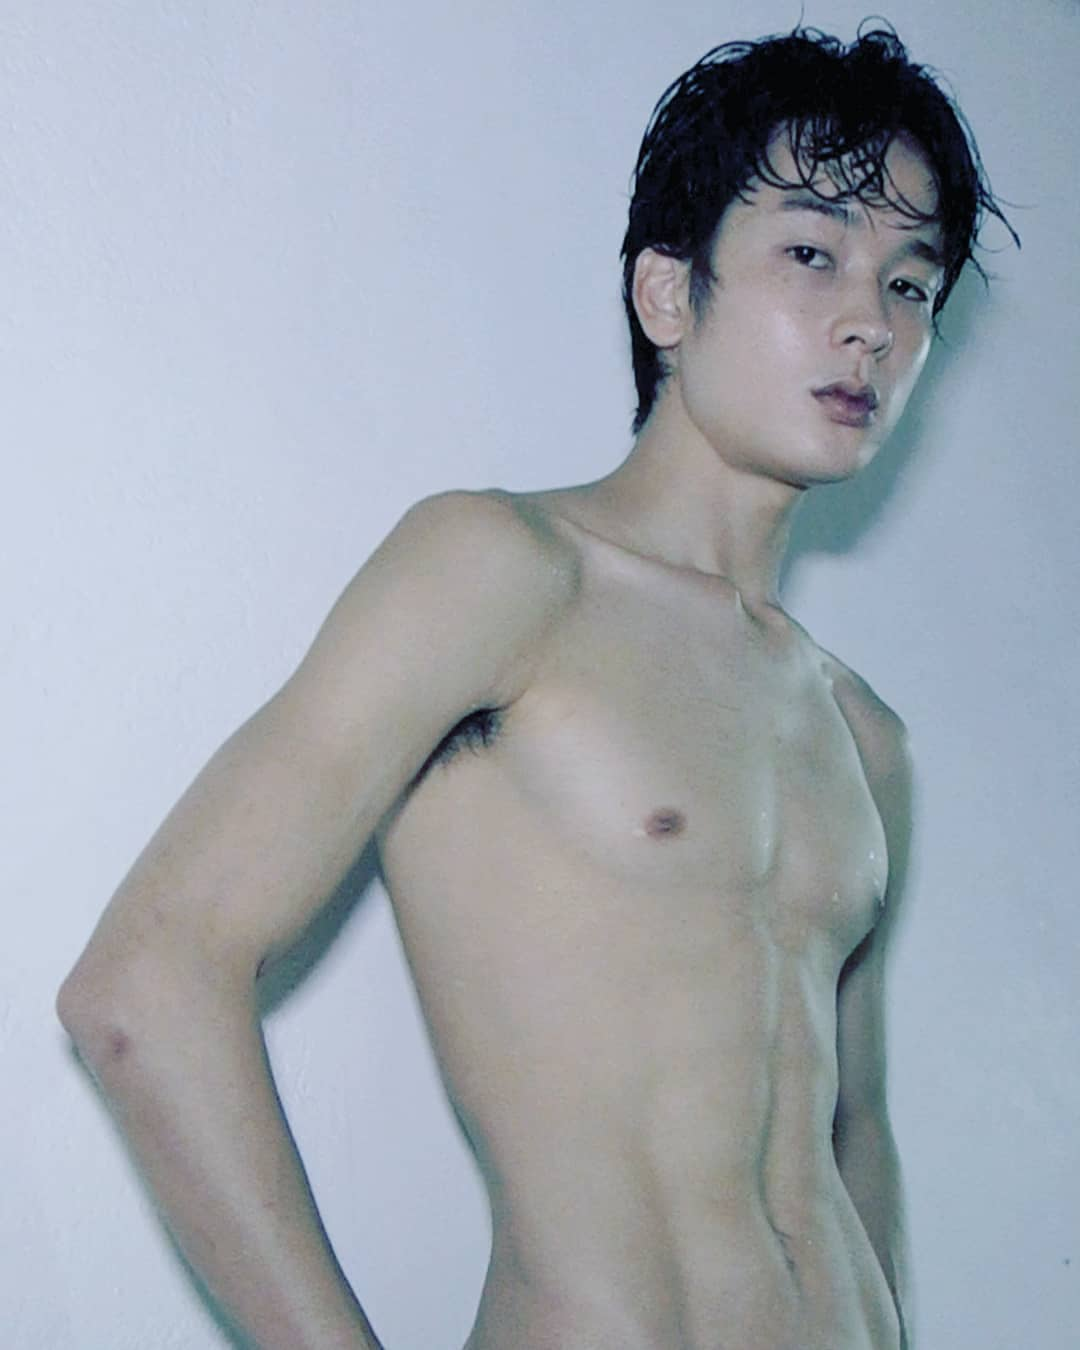 Shun Yamazaki 山崎俊 from Velbed Models Tokyo shot by Ron Wan in Hong Kong